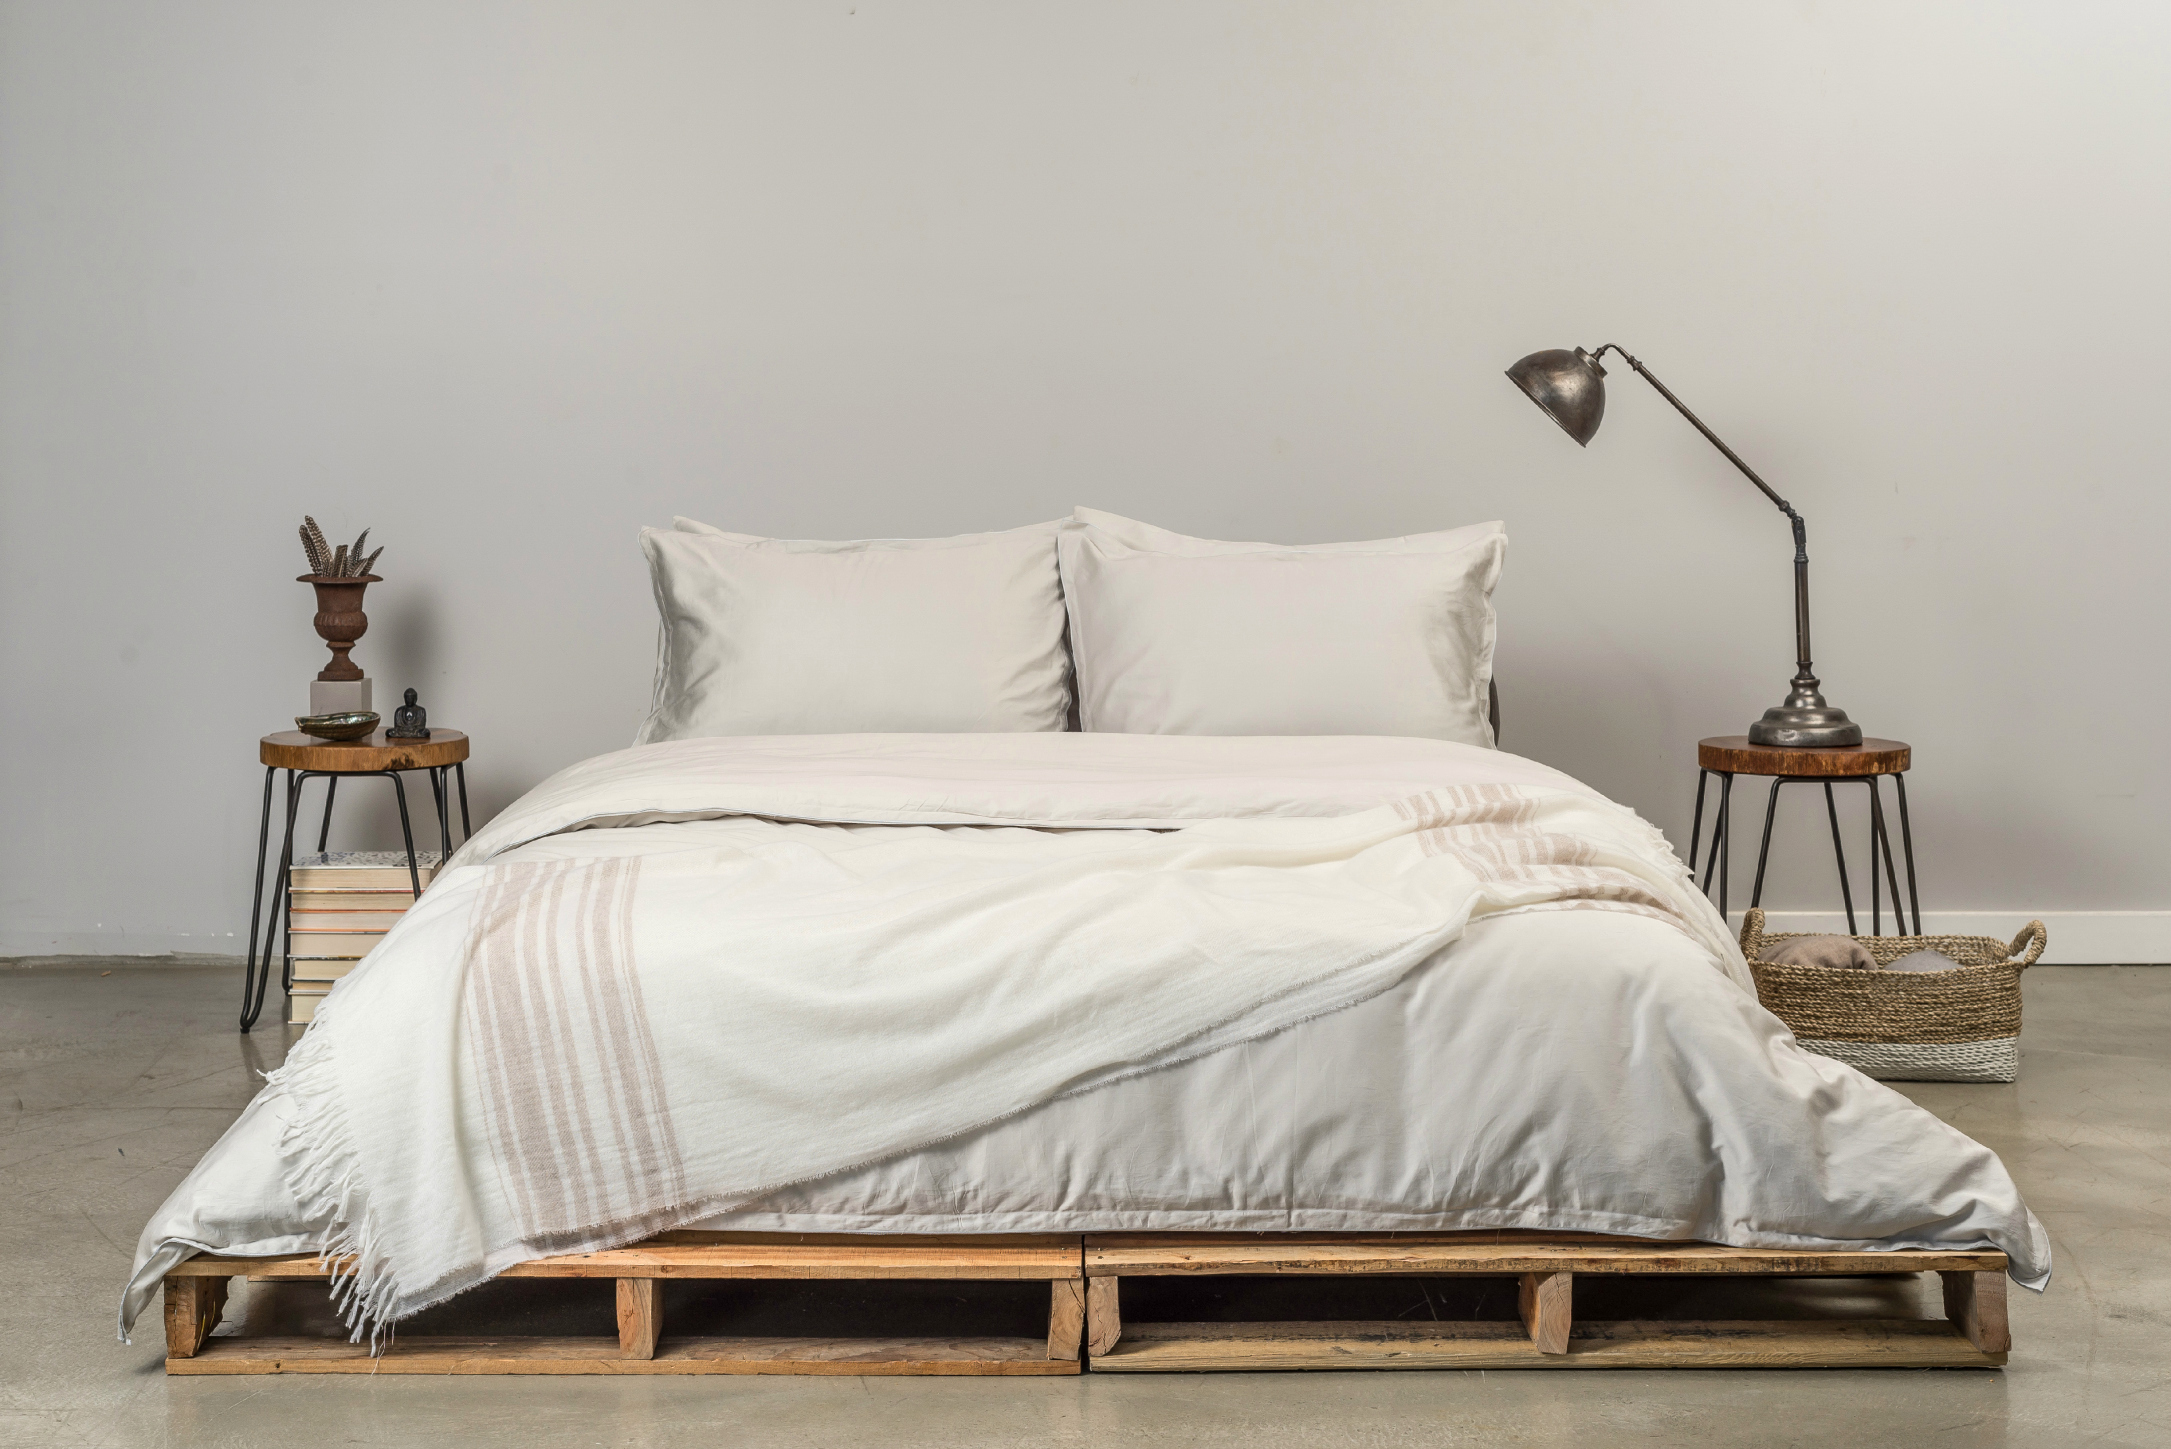 Charming 9 Truths About Bedding: How To Use Your Sheets To Get A Good Nightu0027s Sleep